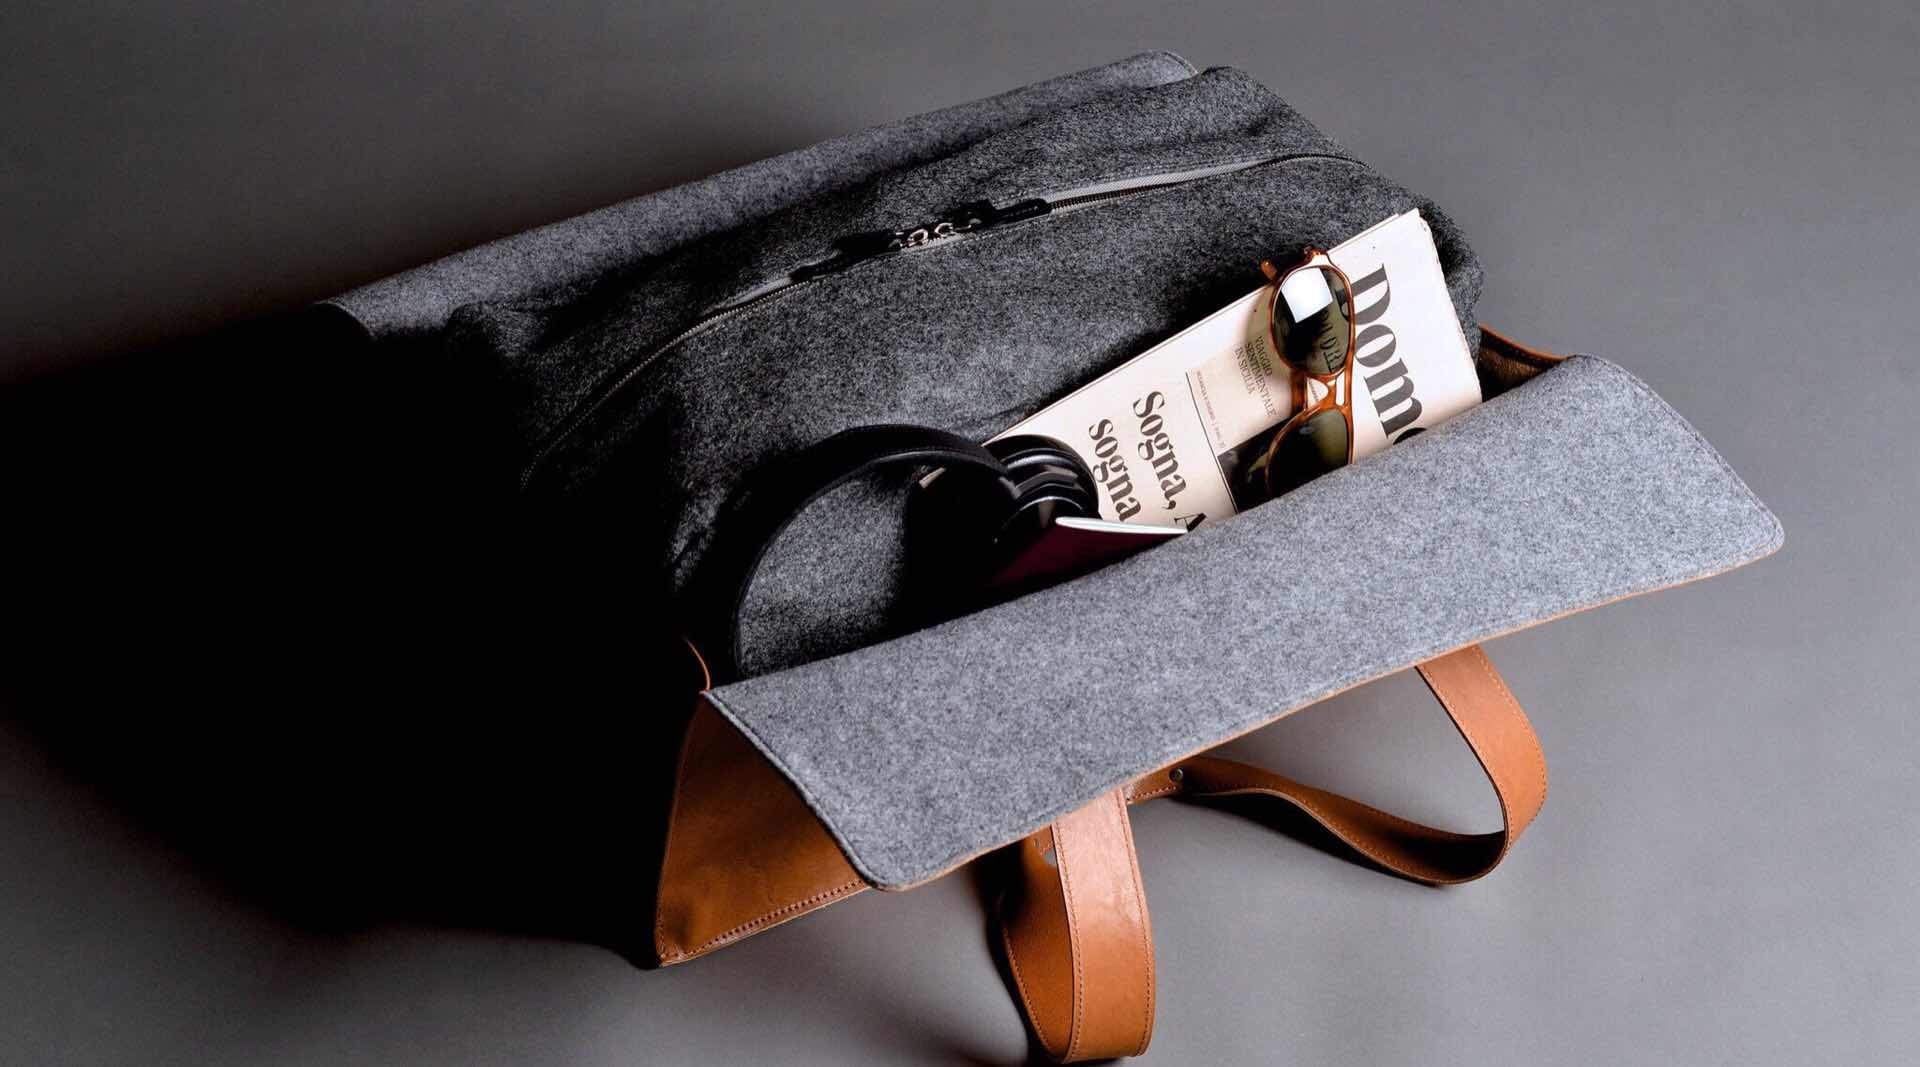 hard-graft-1st-edition-travel-bag-4